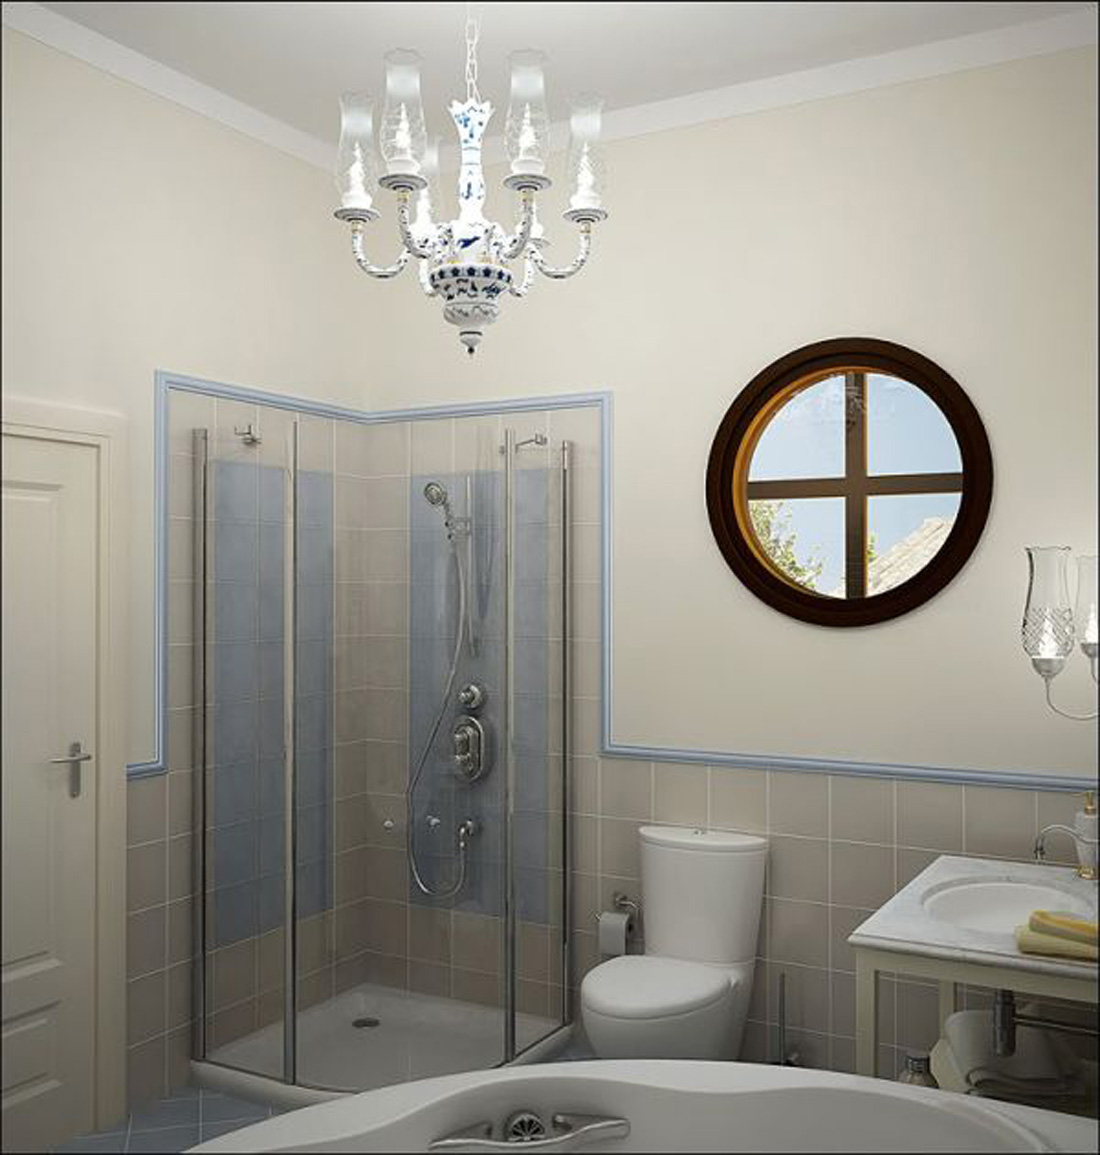 Kamar Mandi 1x1 Small Bathroom Shower Tile Ideas Large And Beautiful